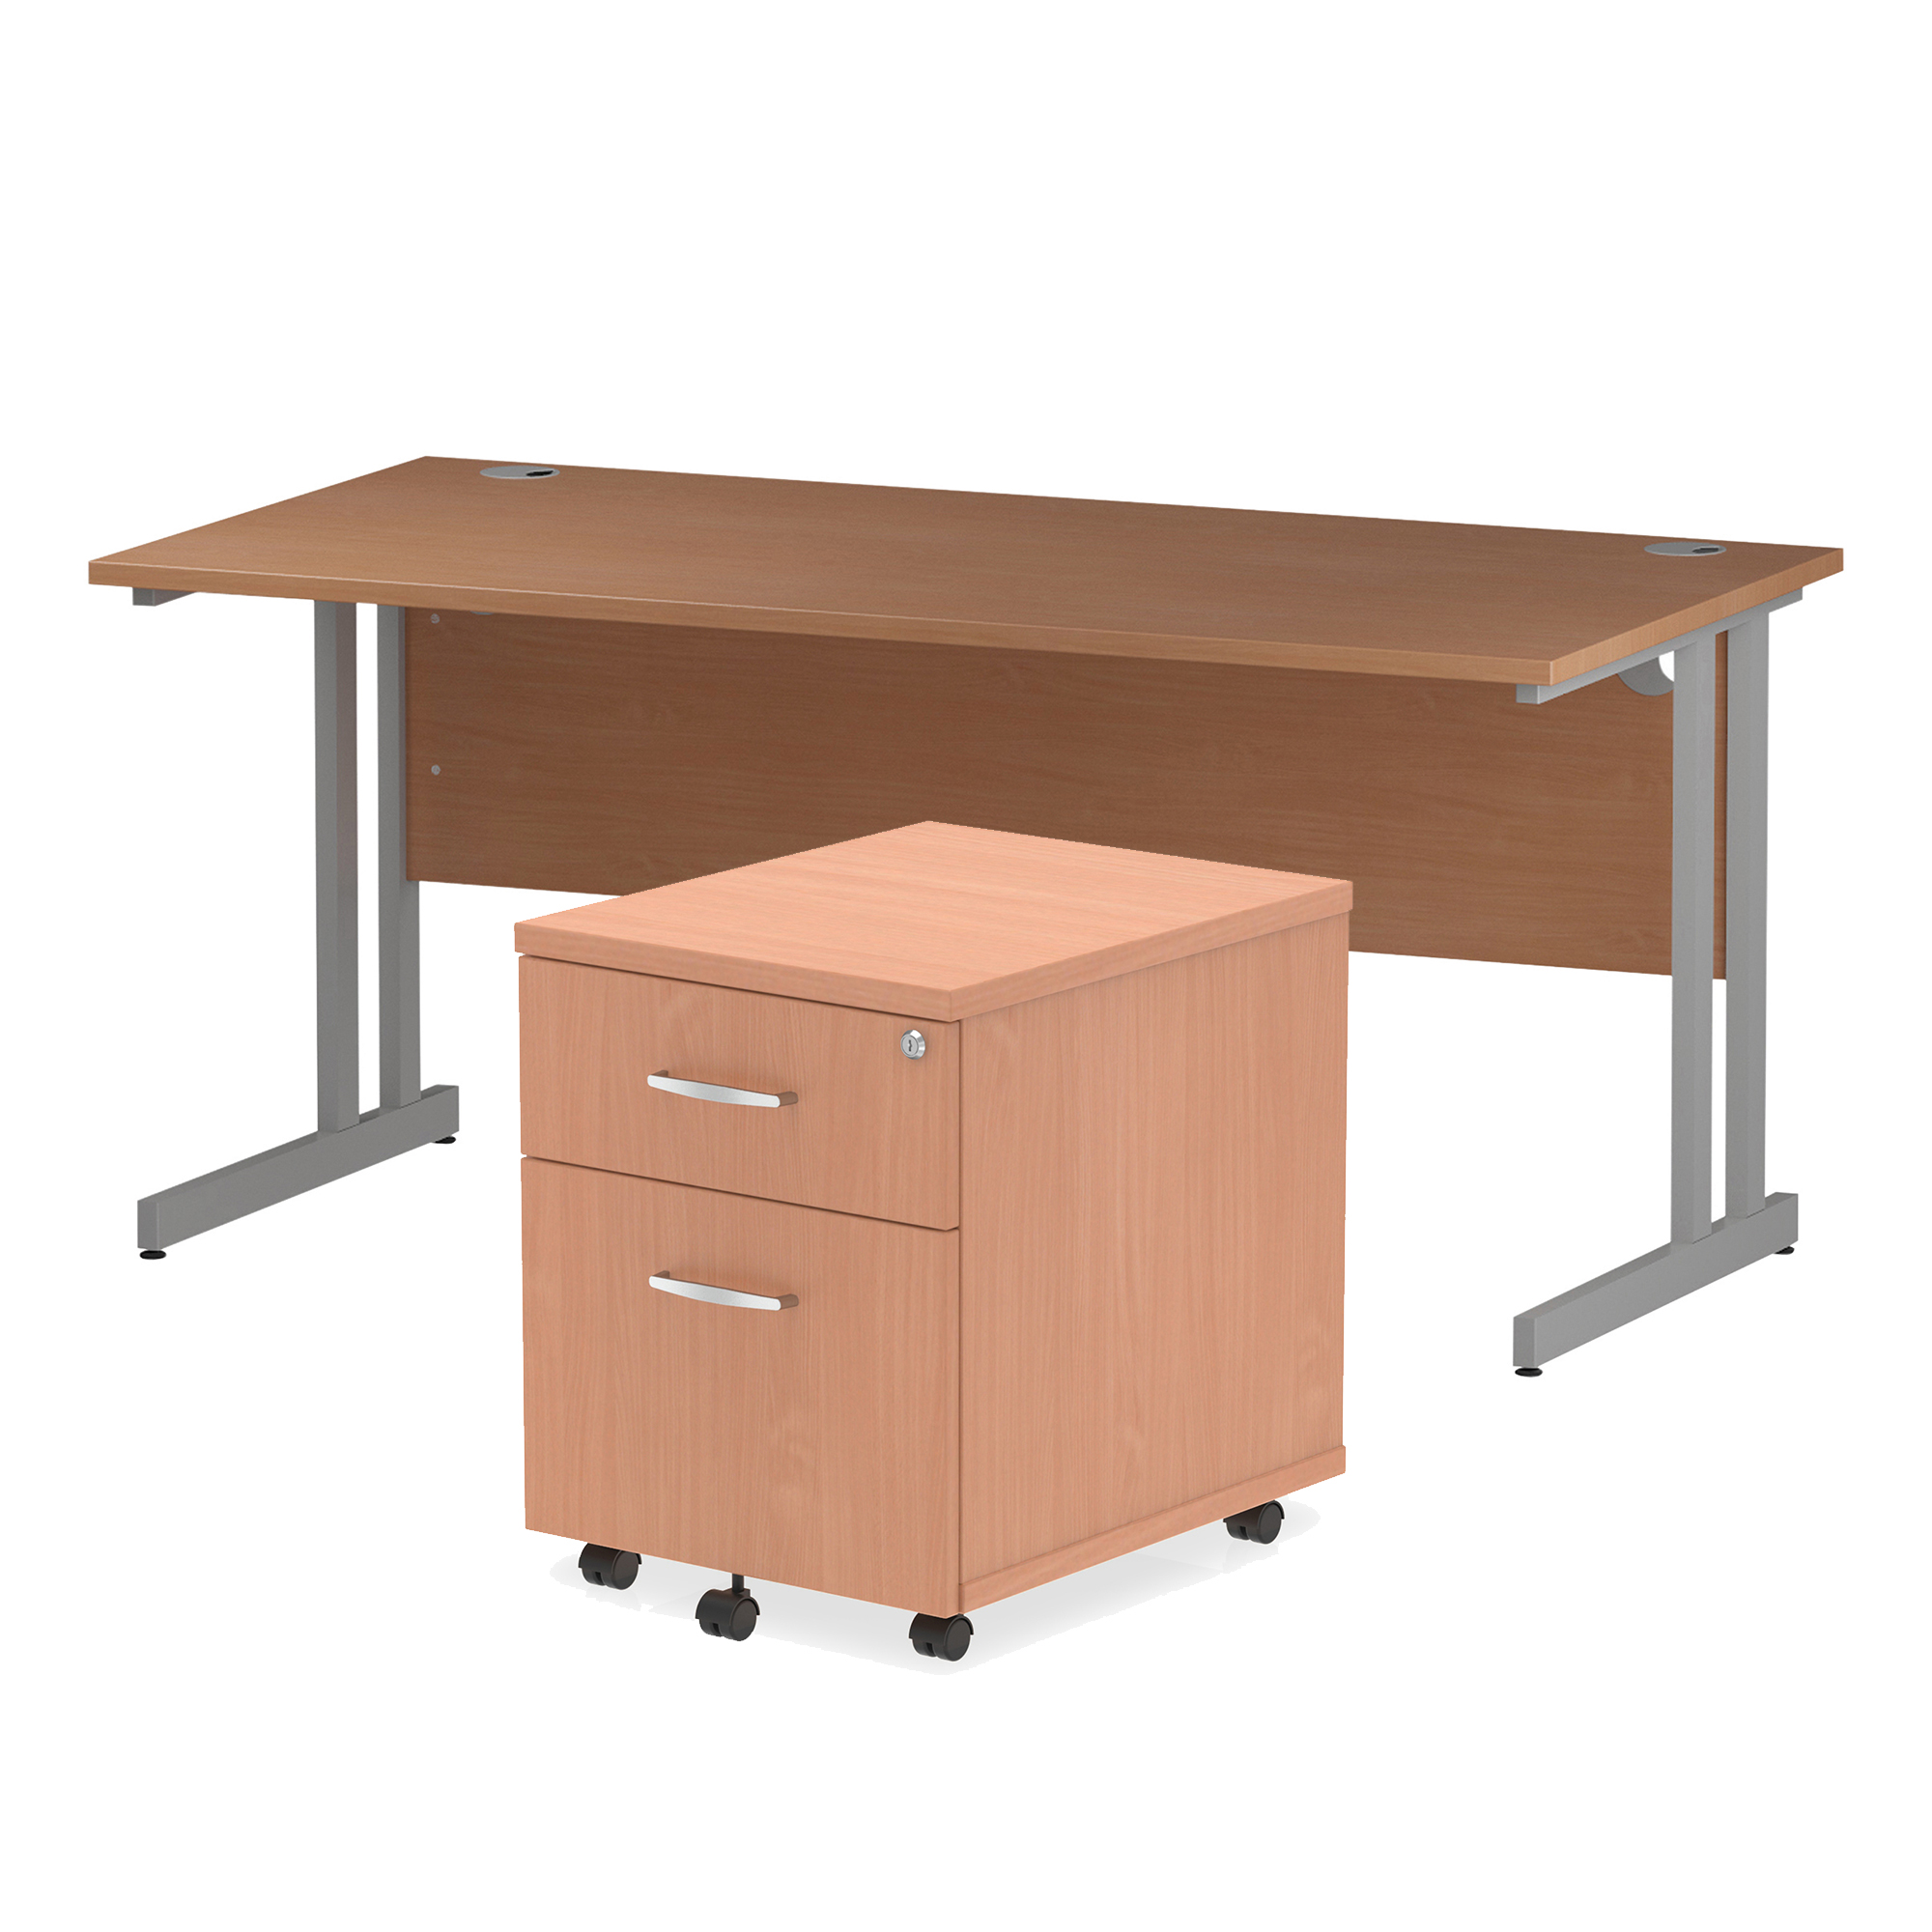 Desks Trexus Cantilever Desk 1600x800 & 2 Drawer Pedestal Beech Bundle Offer Feb-Apr 2020